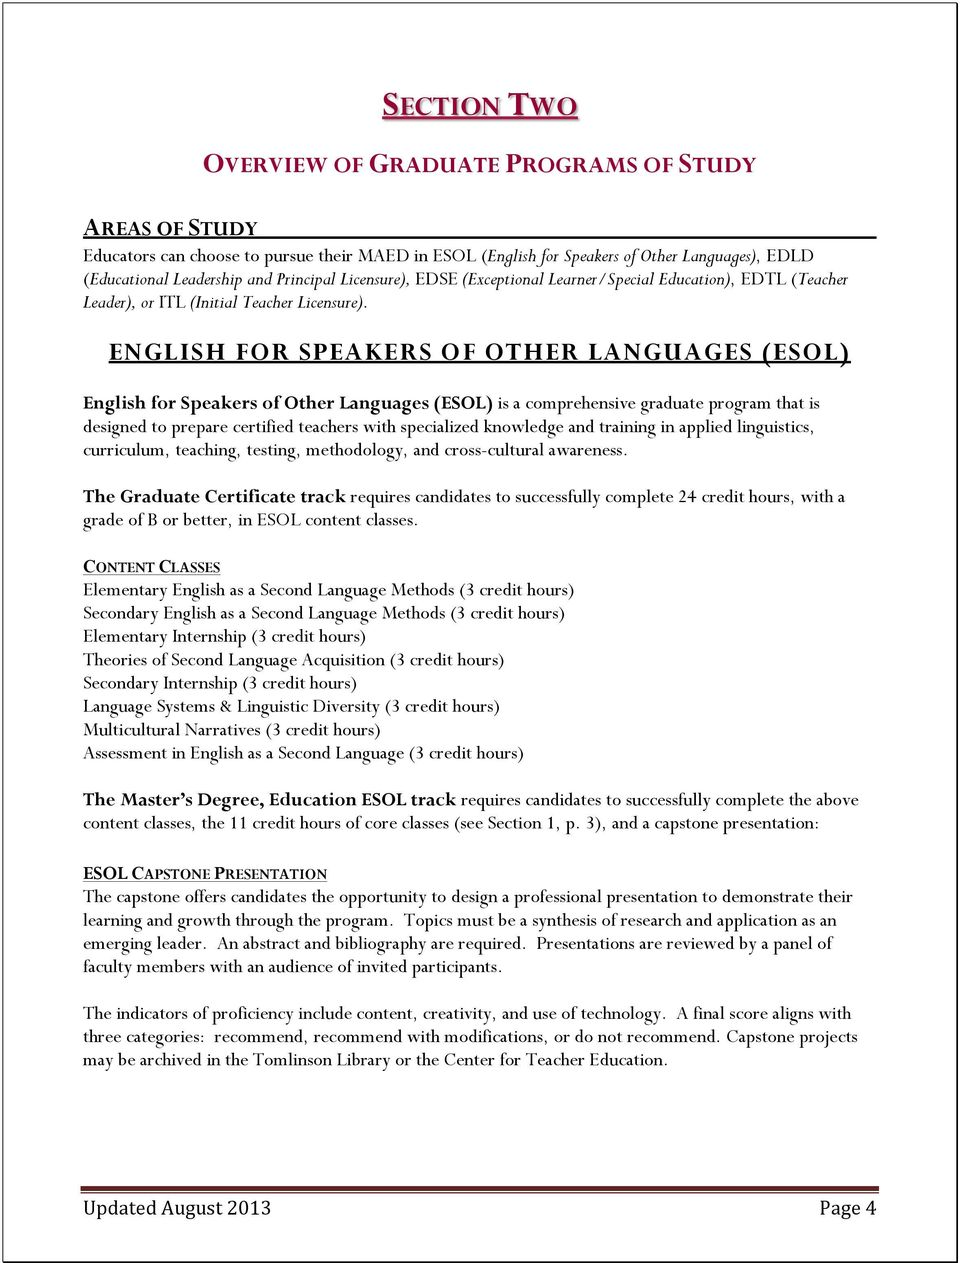 ENGLISH FOR SPEAKERS OF OTHER LANGUAGES (ESOL) English for Speakers of Other Languages (ESOL) is a comprehensive graduate program that is designed to prepare certified teachers with specialized